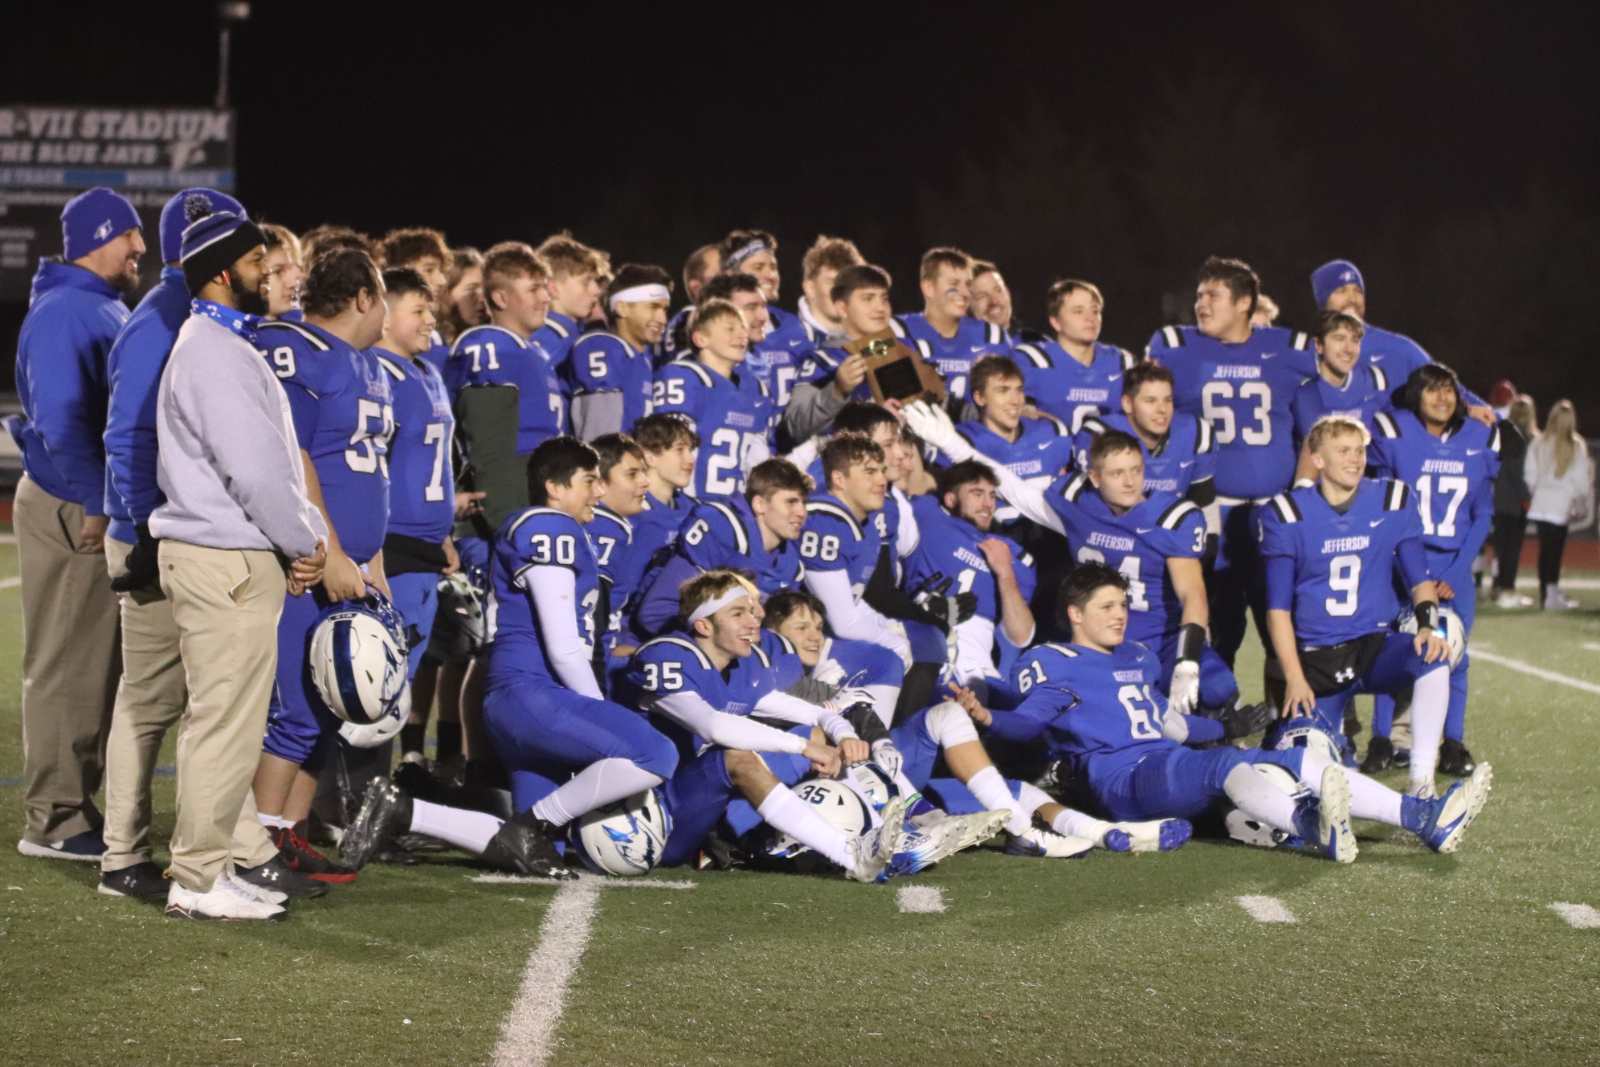 JHS Football Defeats New Madrid – Districts! 11/13/20